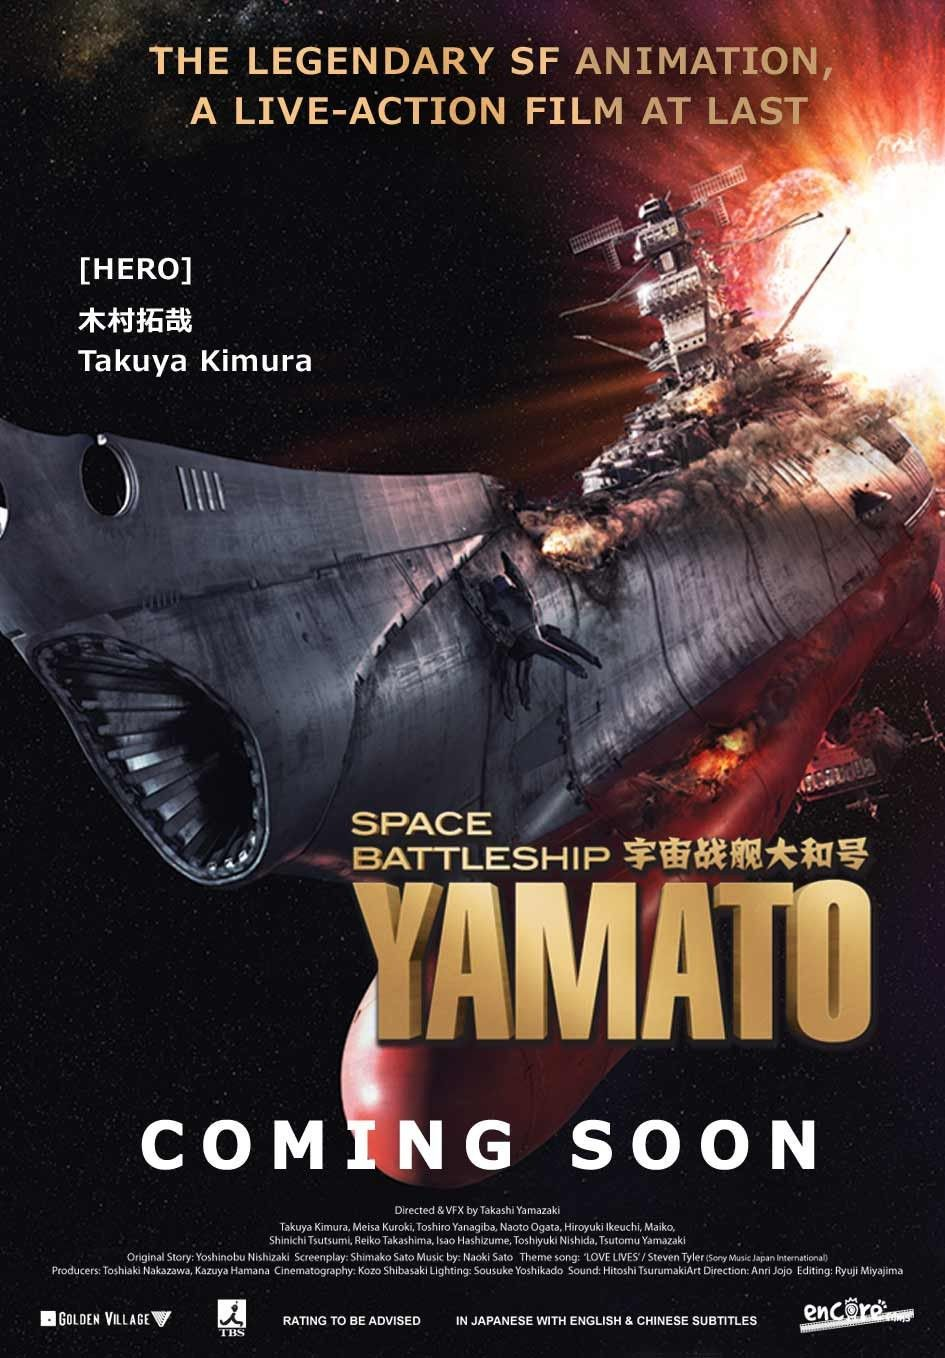 Worth it just to see a live-action Yamato / Argo break free of the Earth's scarred crust. Space Battleship Yamato